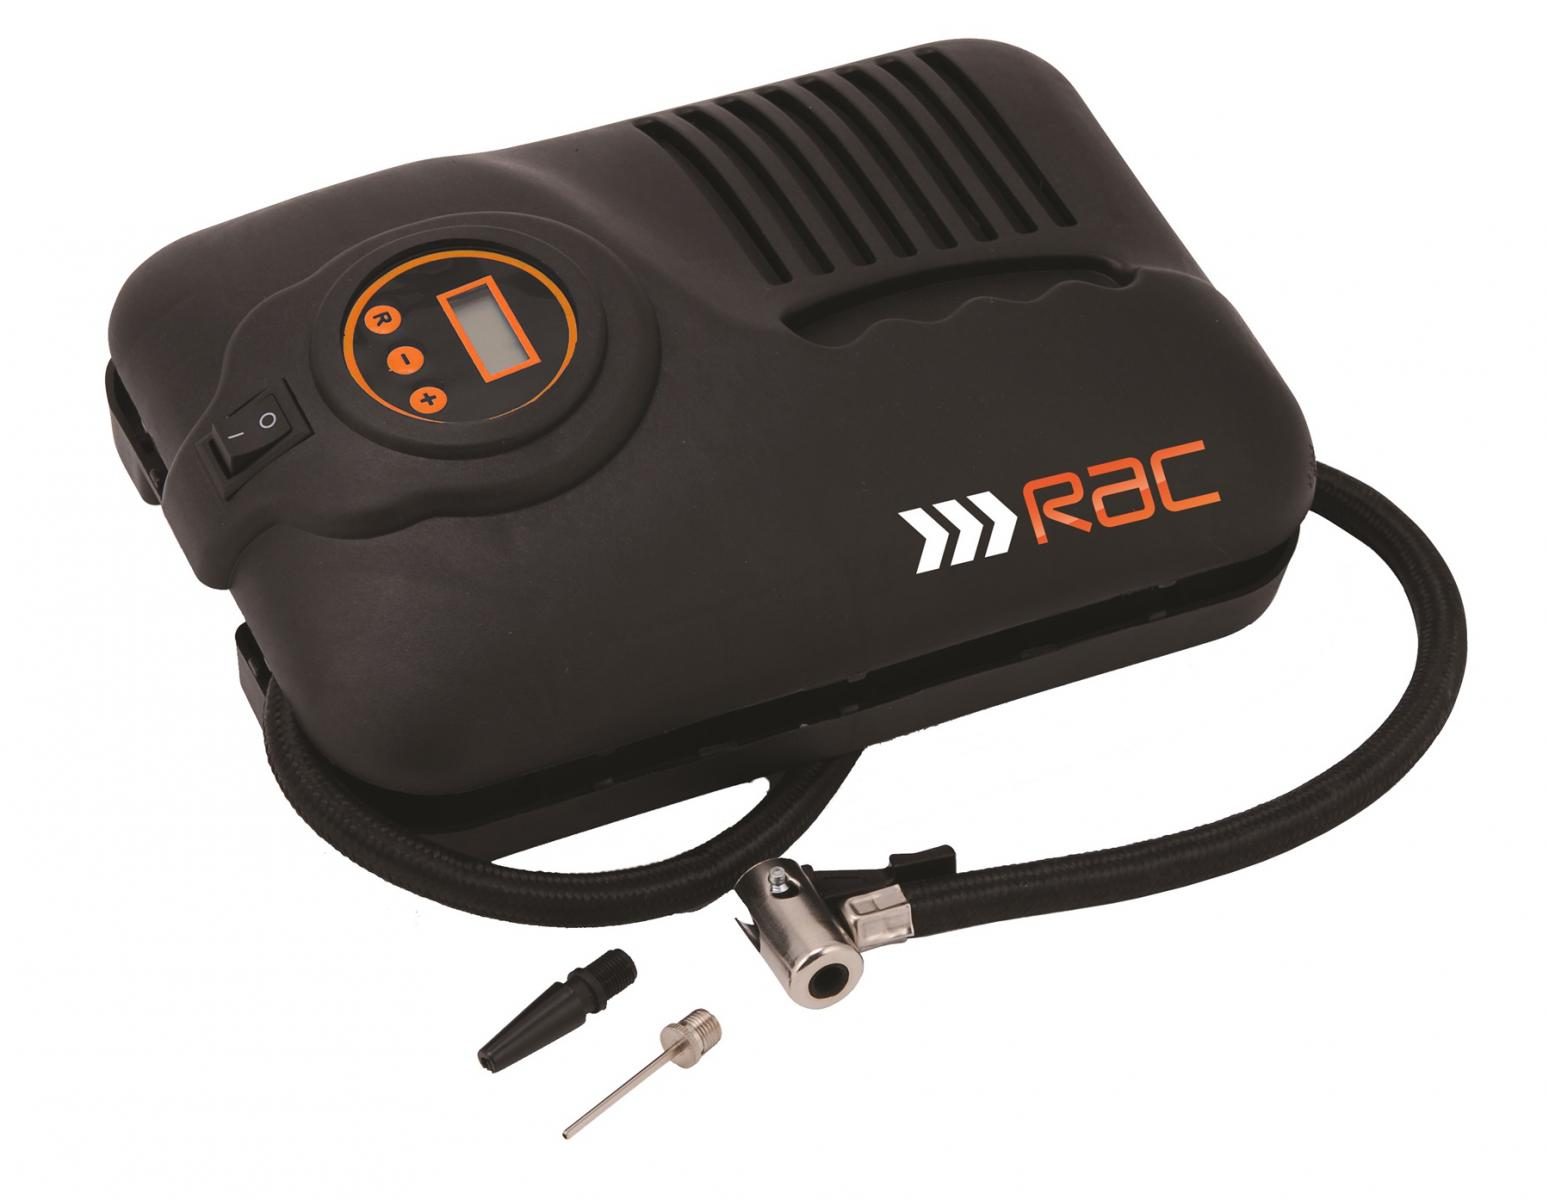 RAC Digitial Compressor – Now Only £15.00